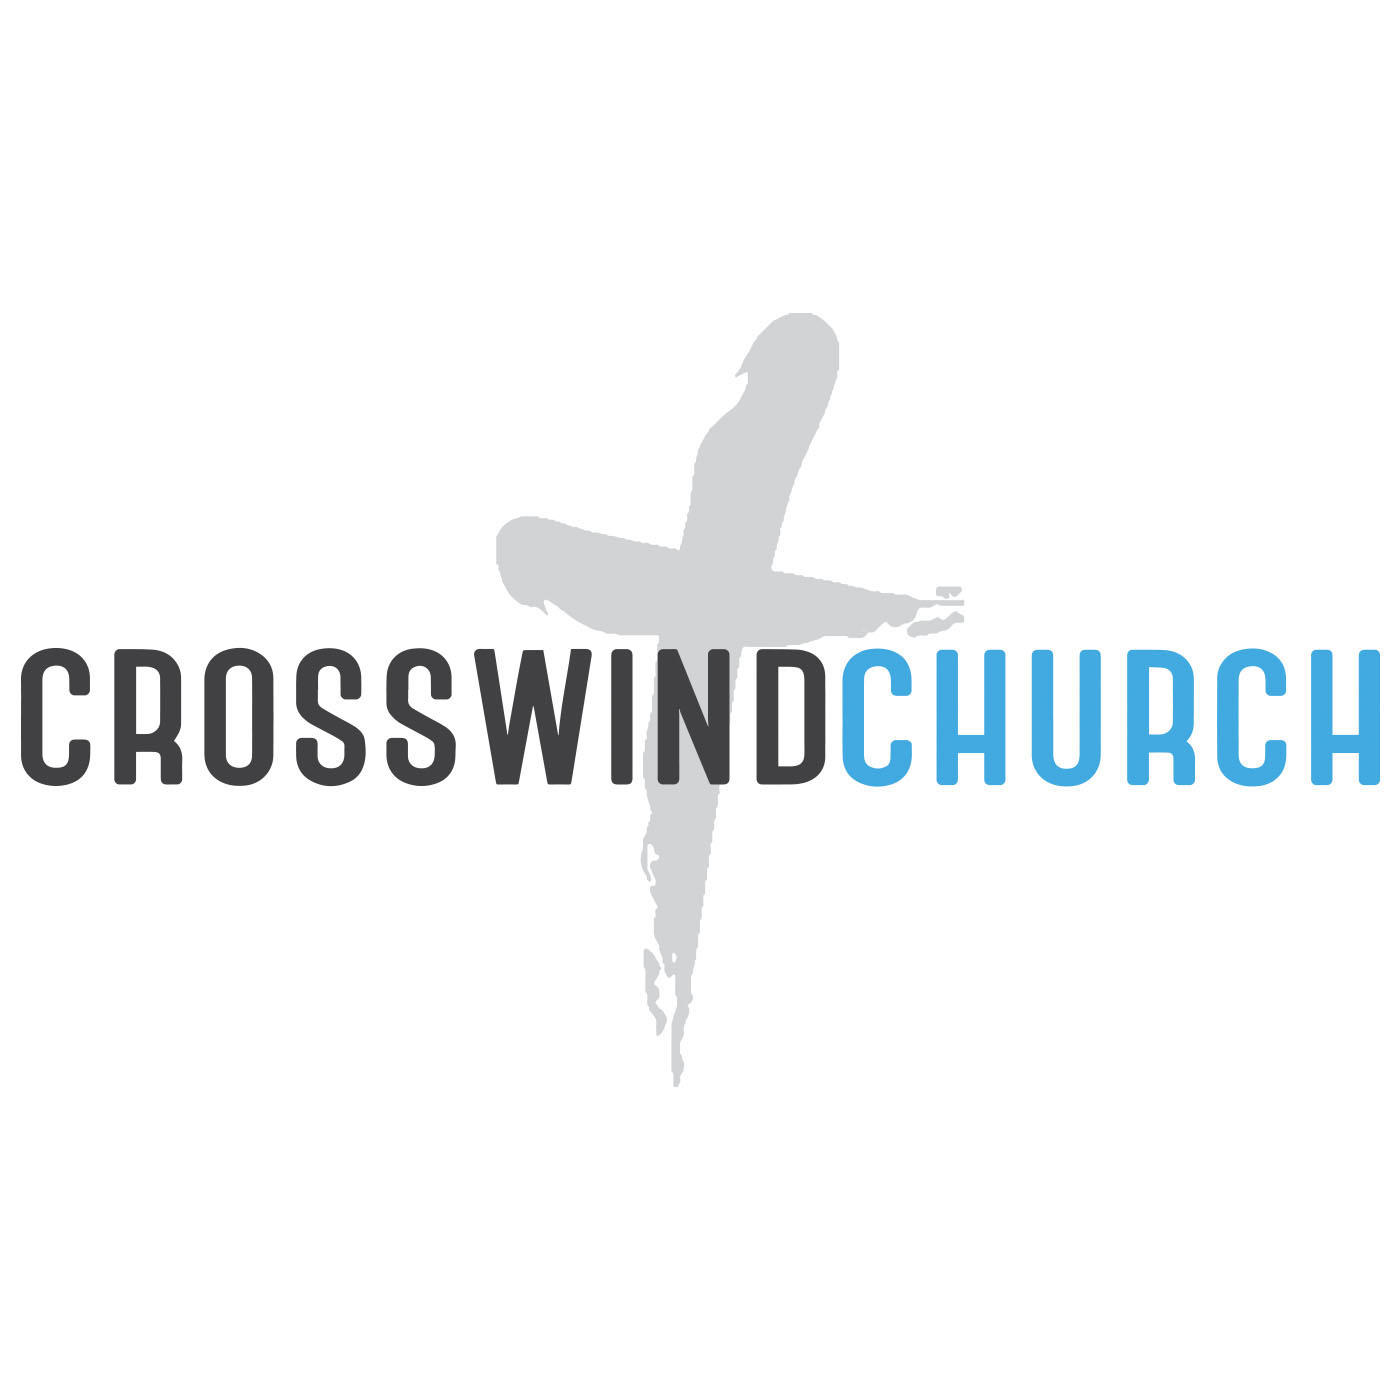 Crosswind Church--Union City, TN